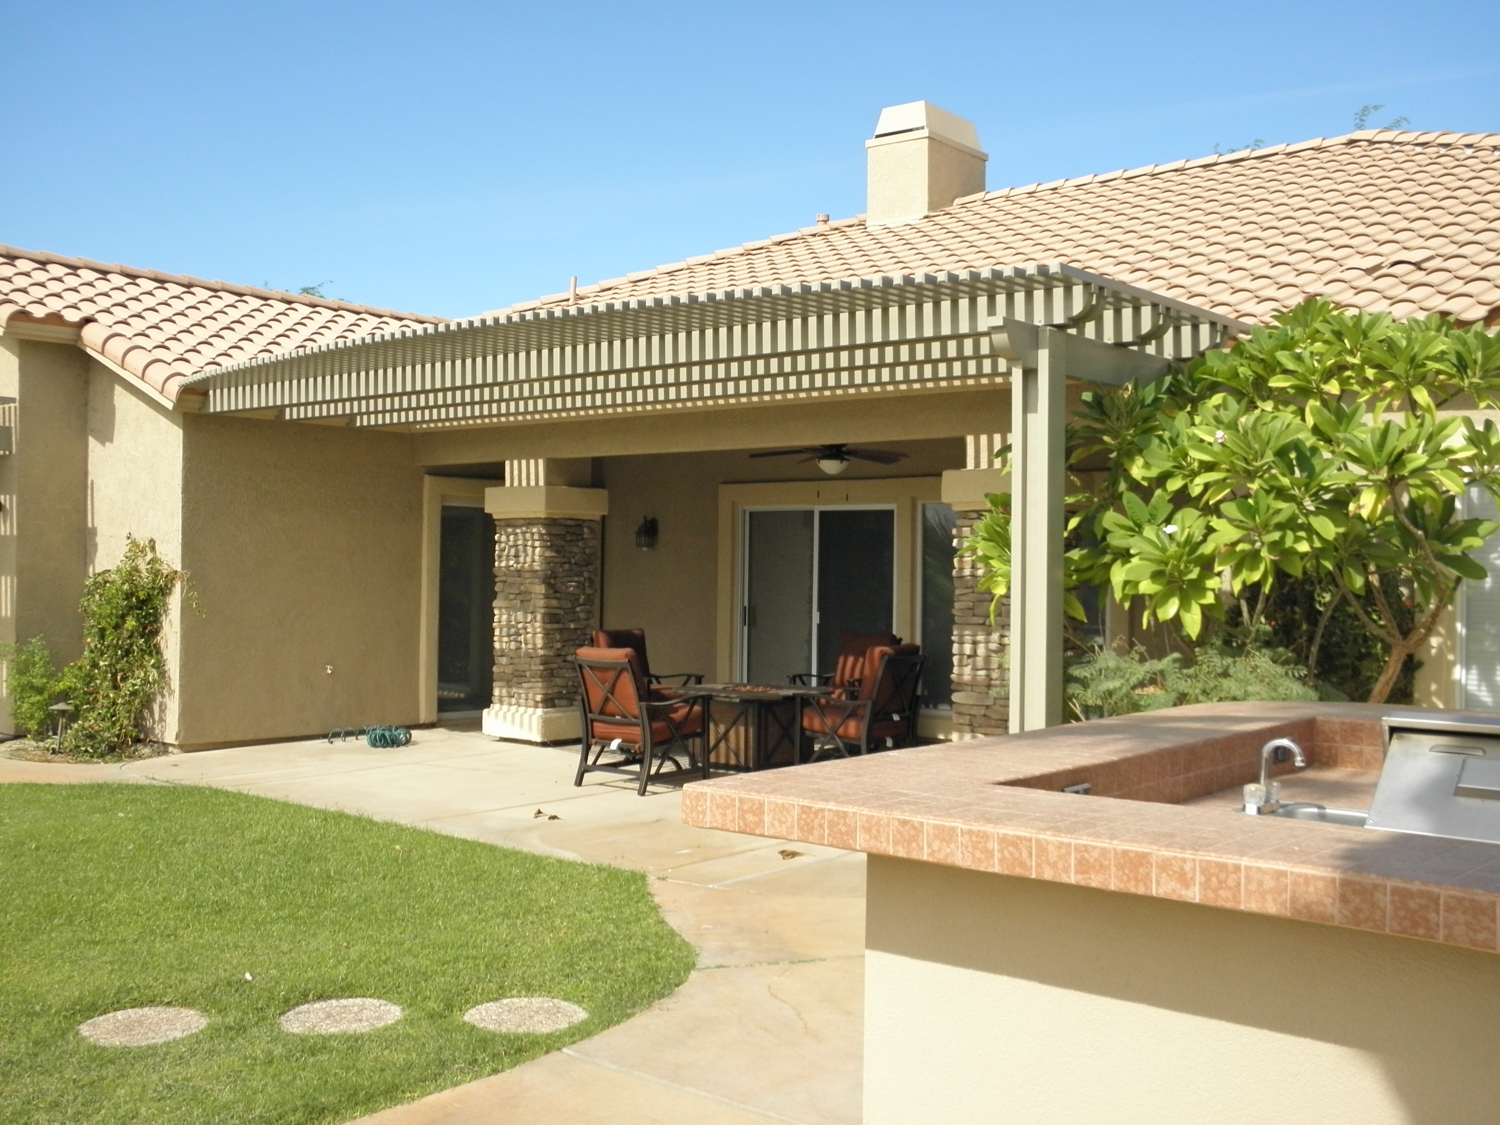 Custom Lattice Patio Cover in Rancho Mirage, CA